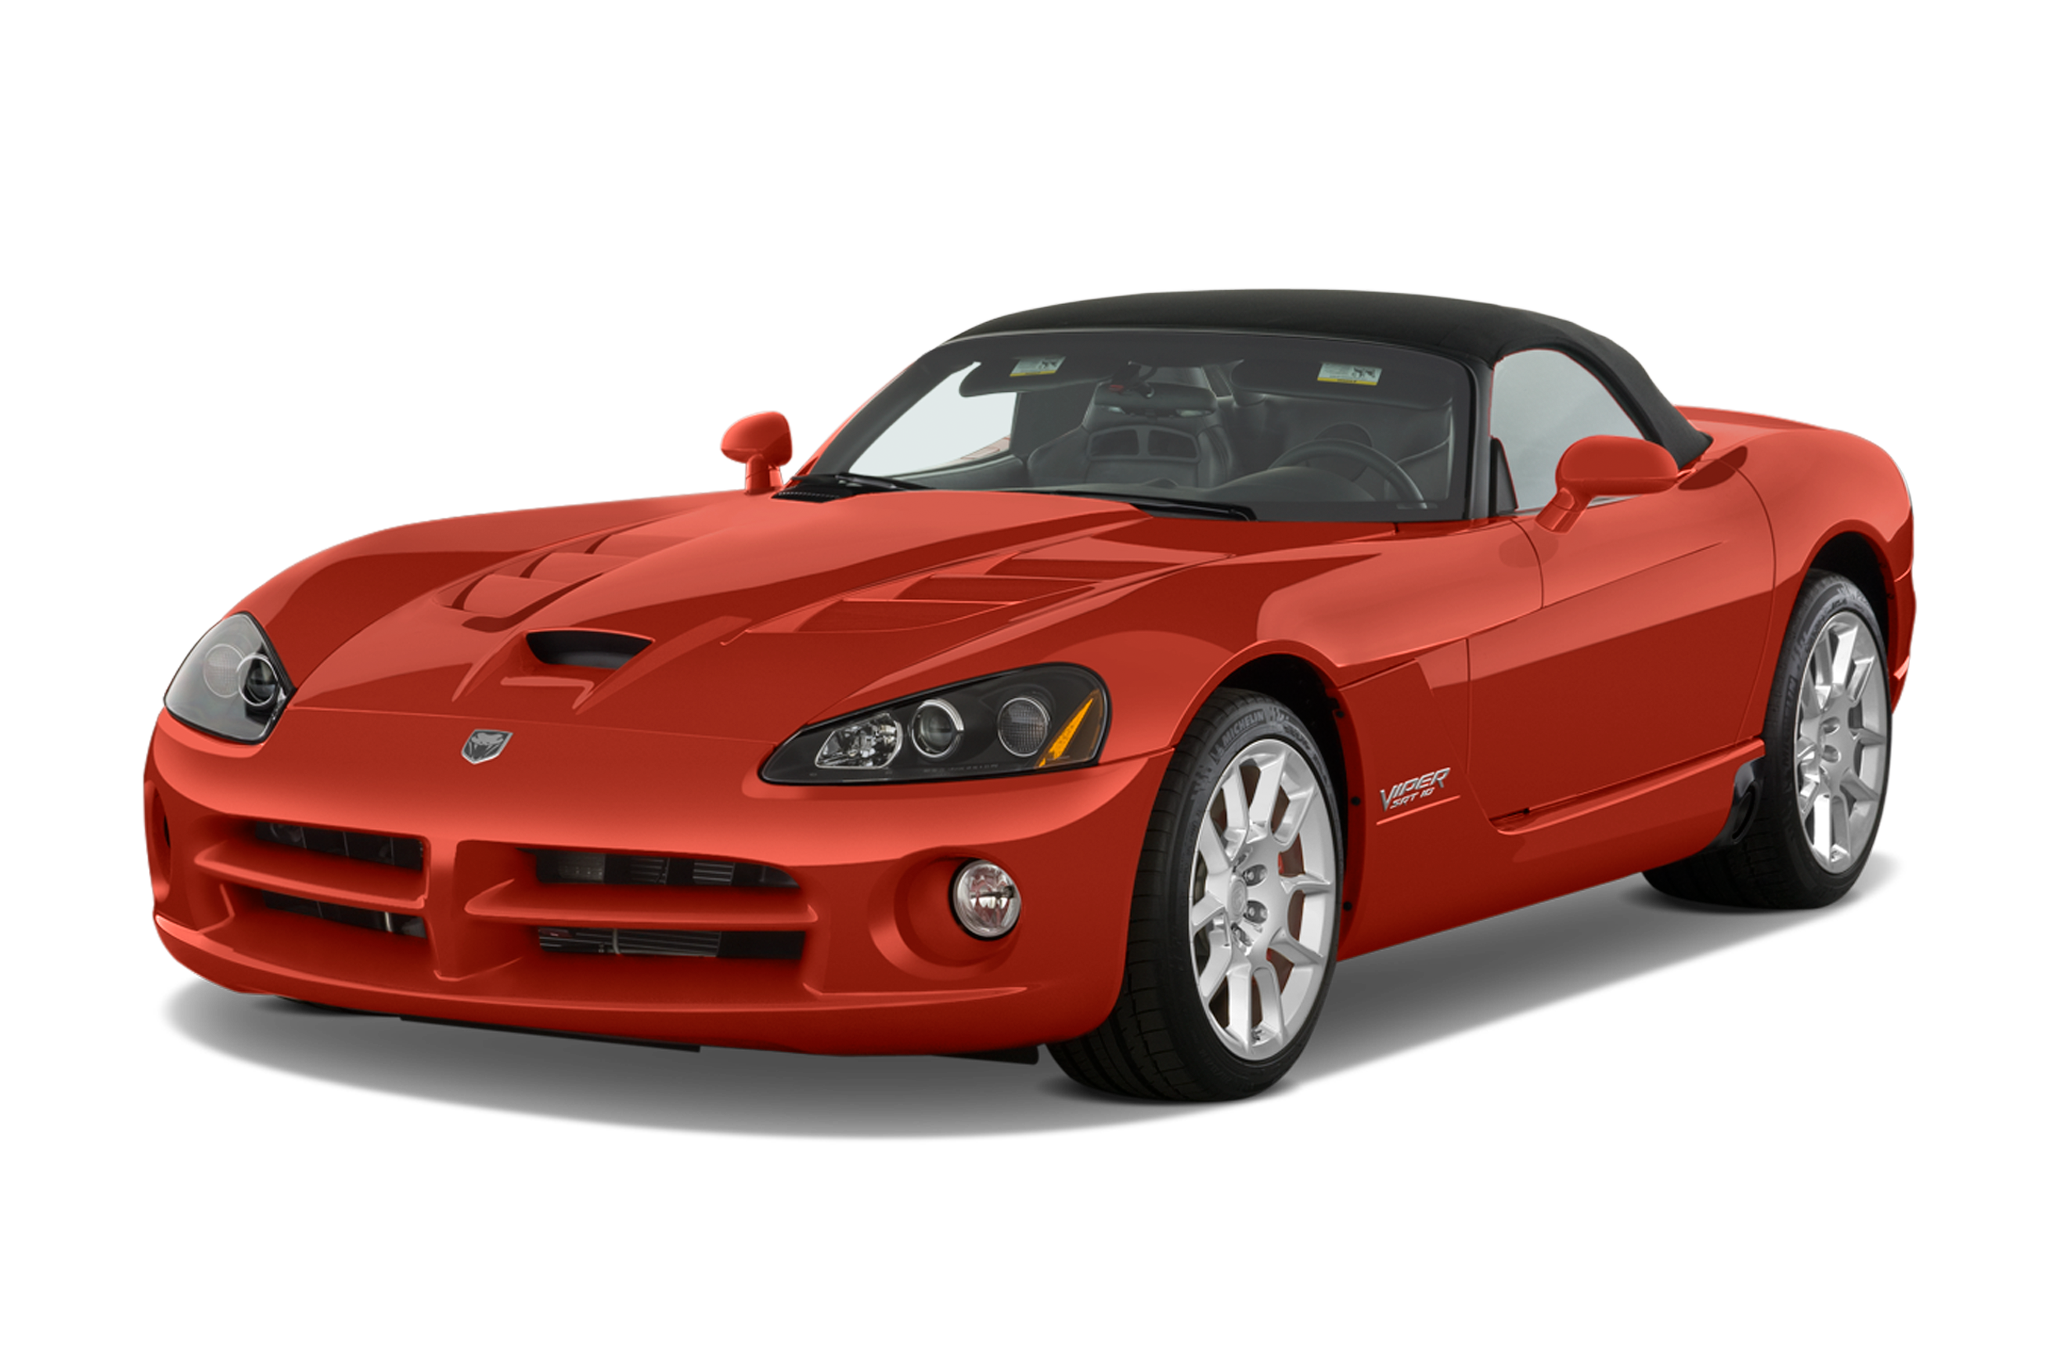 Dodge Viper Photos PNG Image